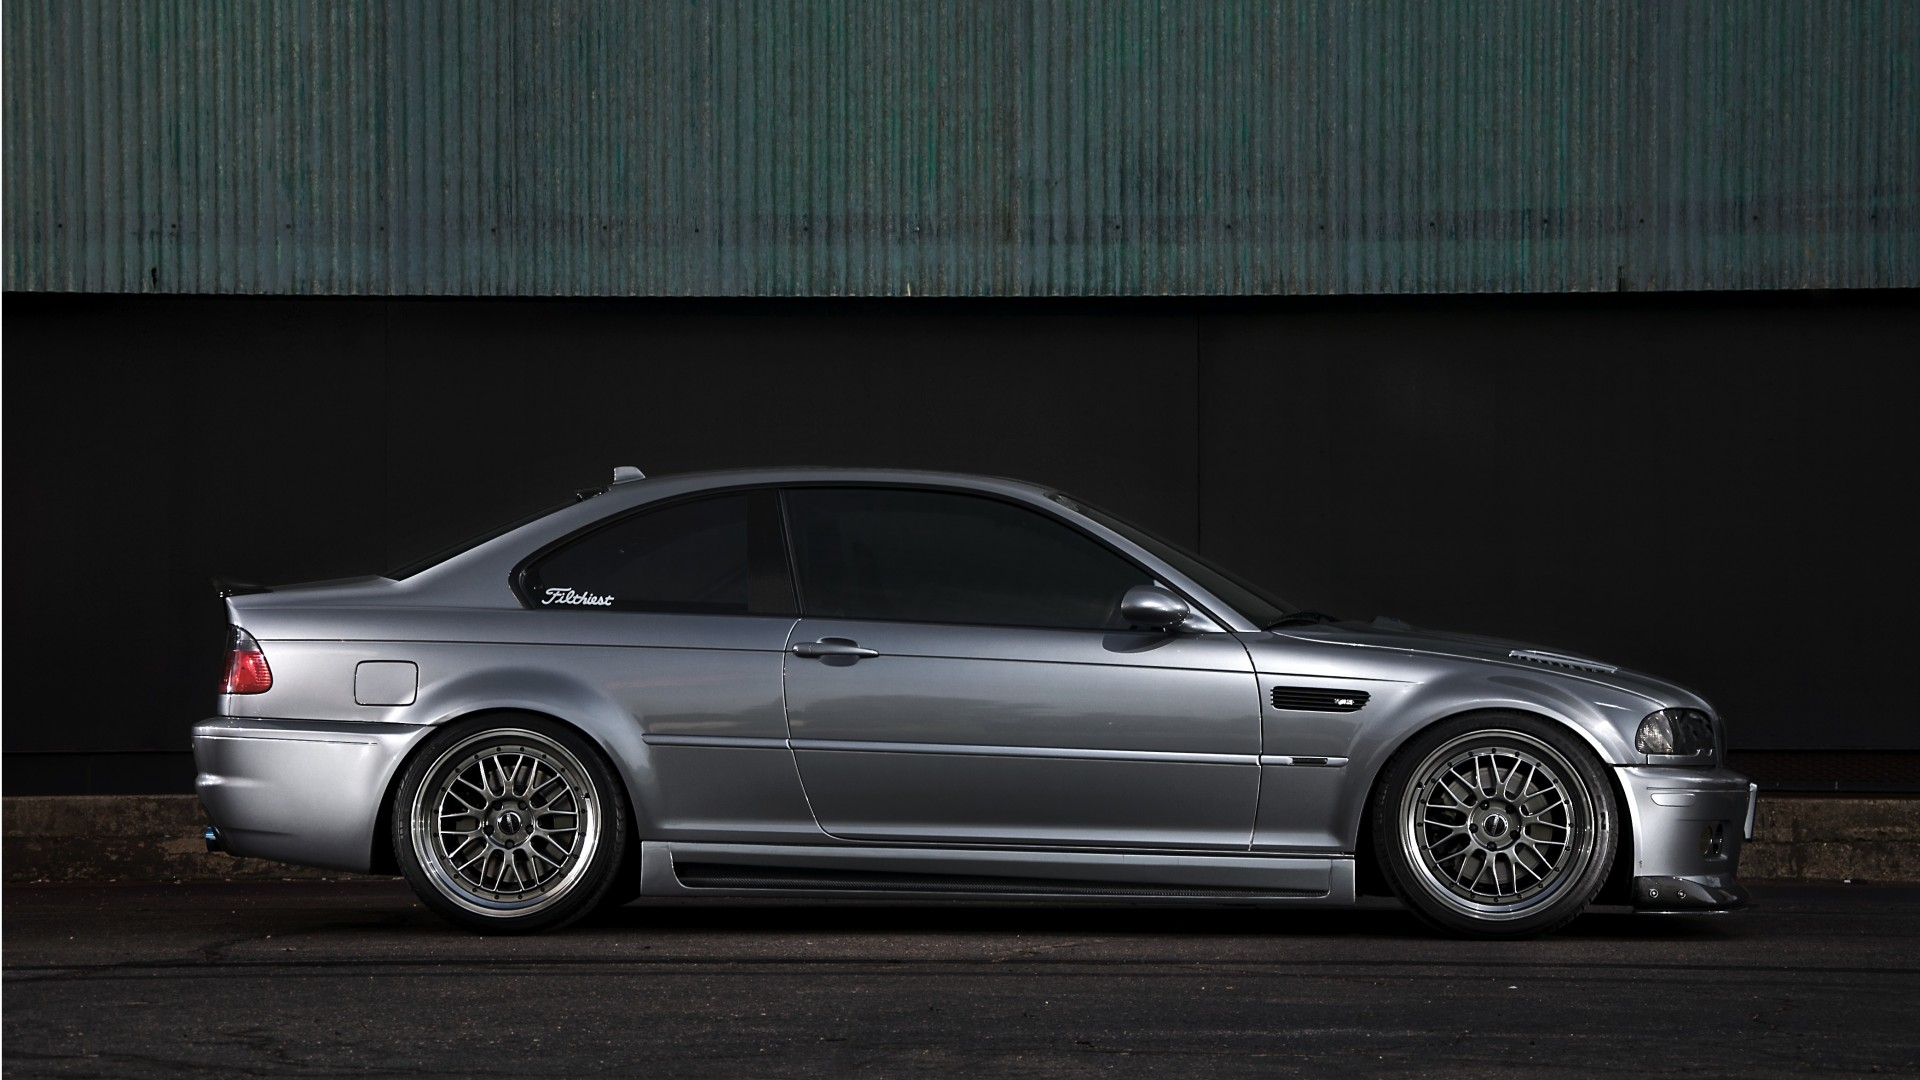 76 E46 Wallpaper On Wallpapersafari